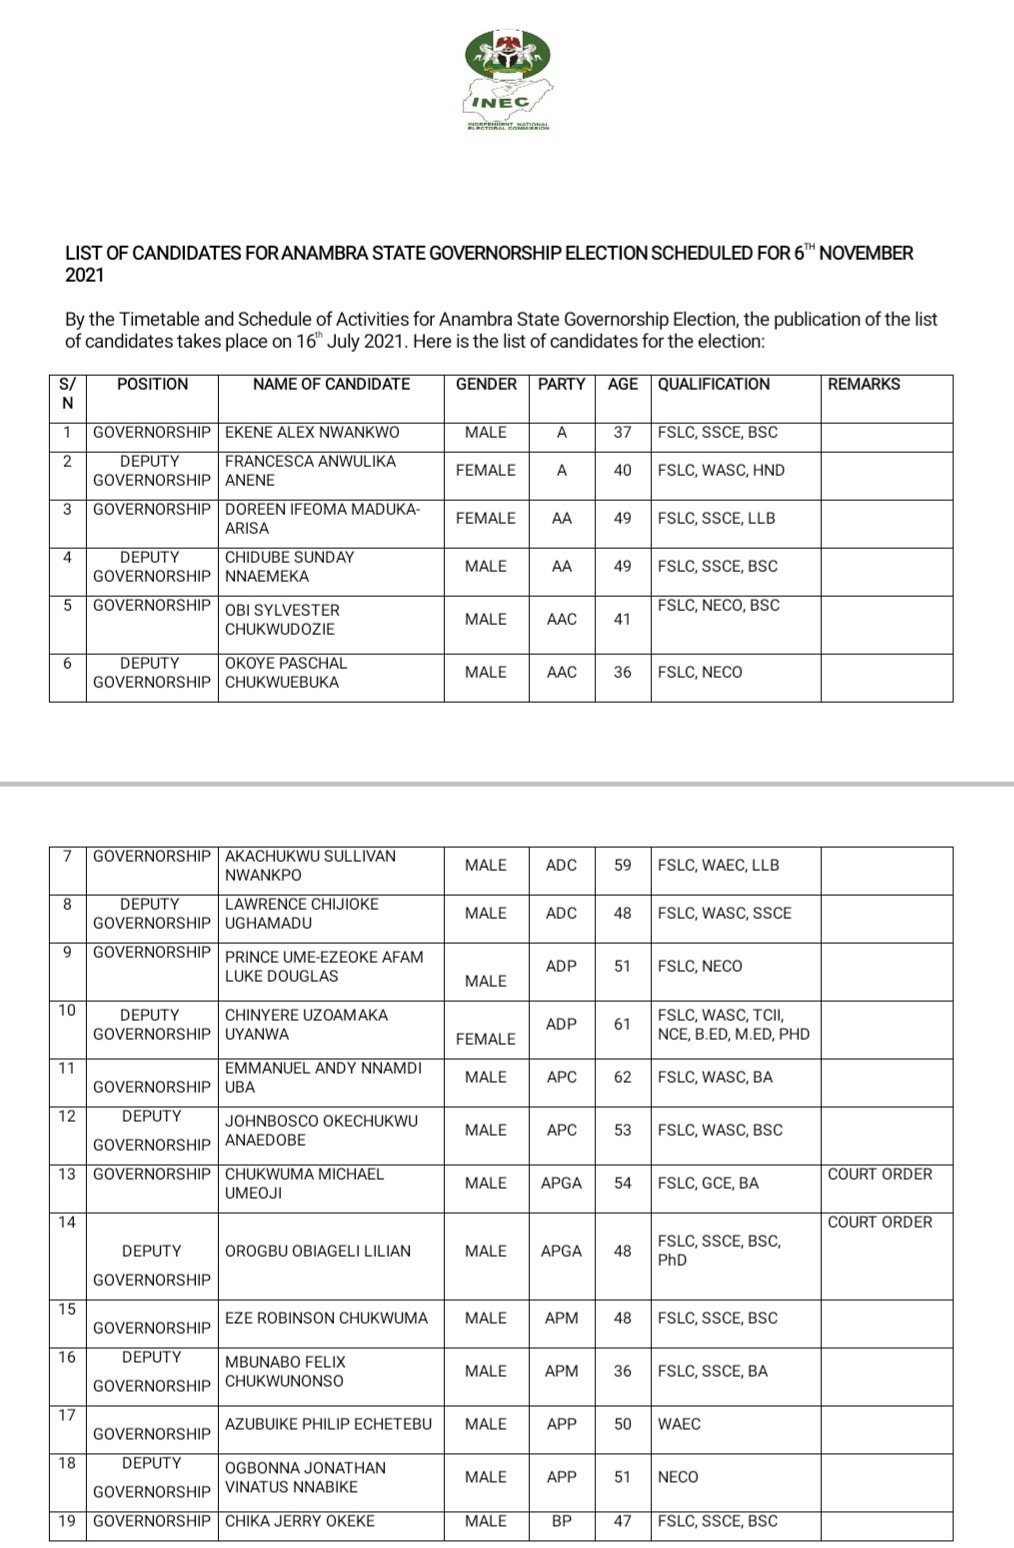 List of cleared candidates by INEC for the Anambra Governorship election